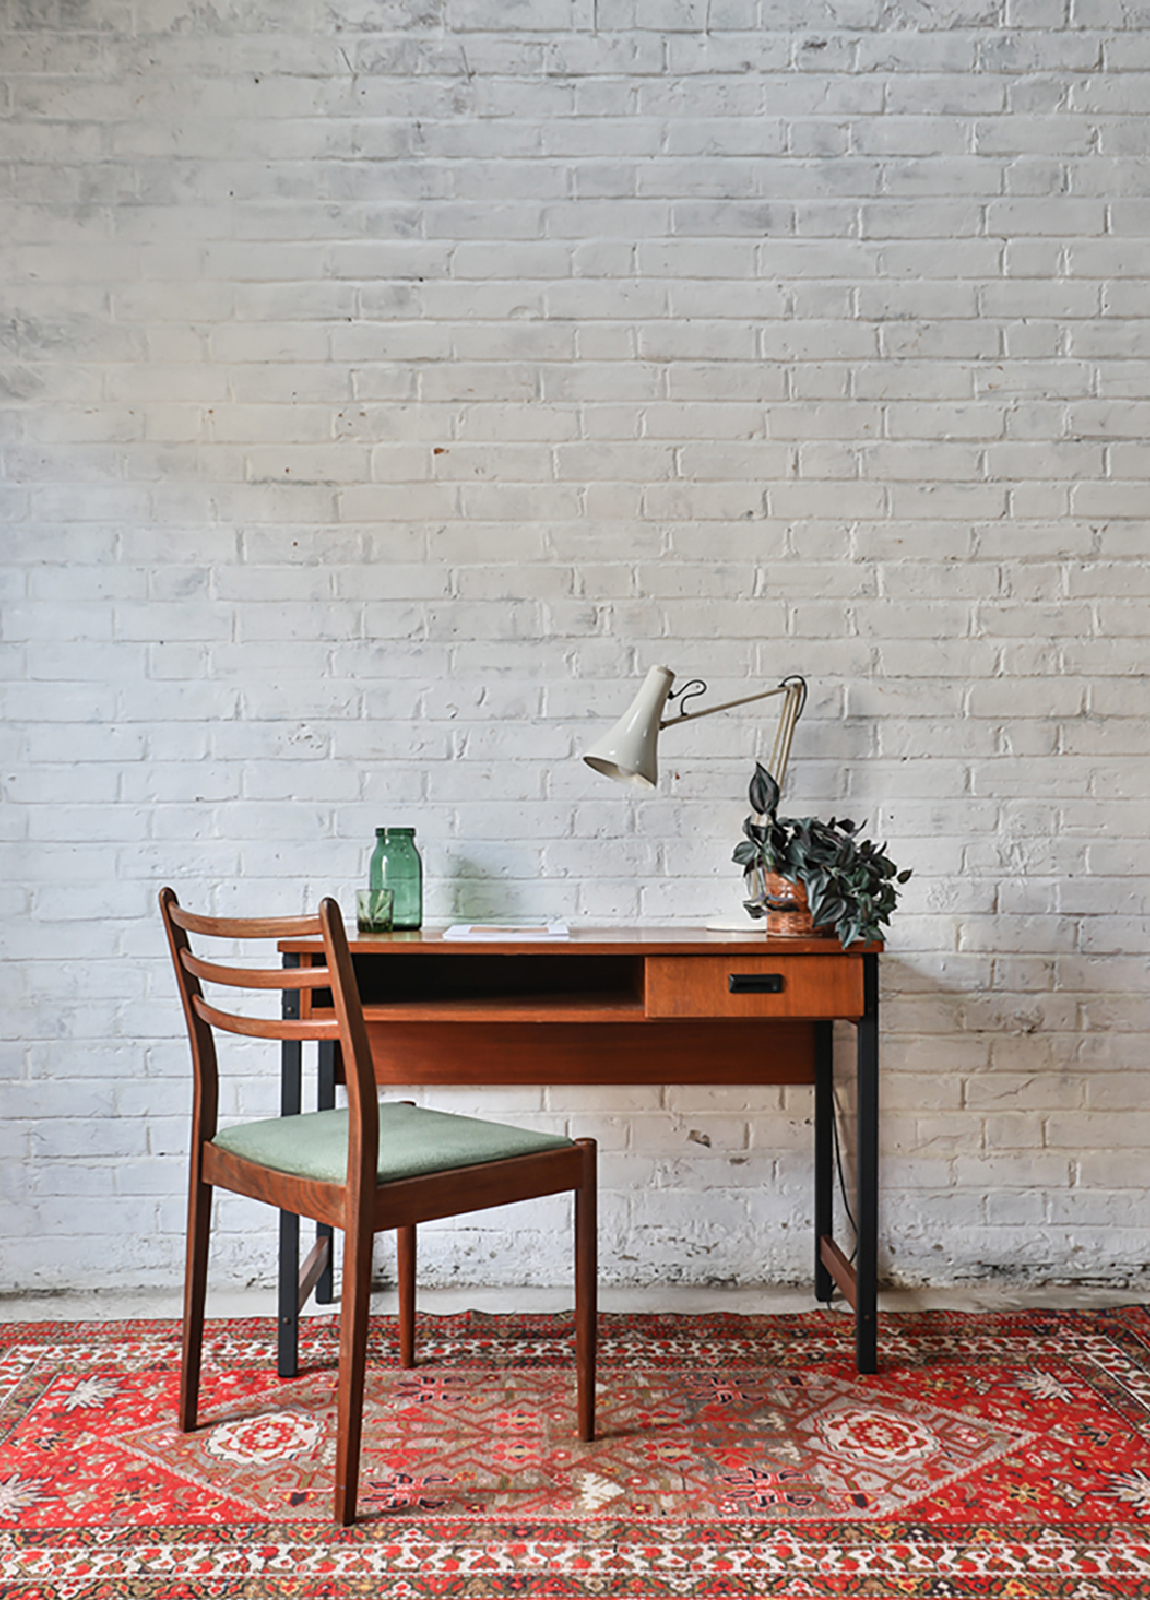 A vintage desk and chair on a rug